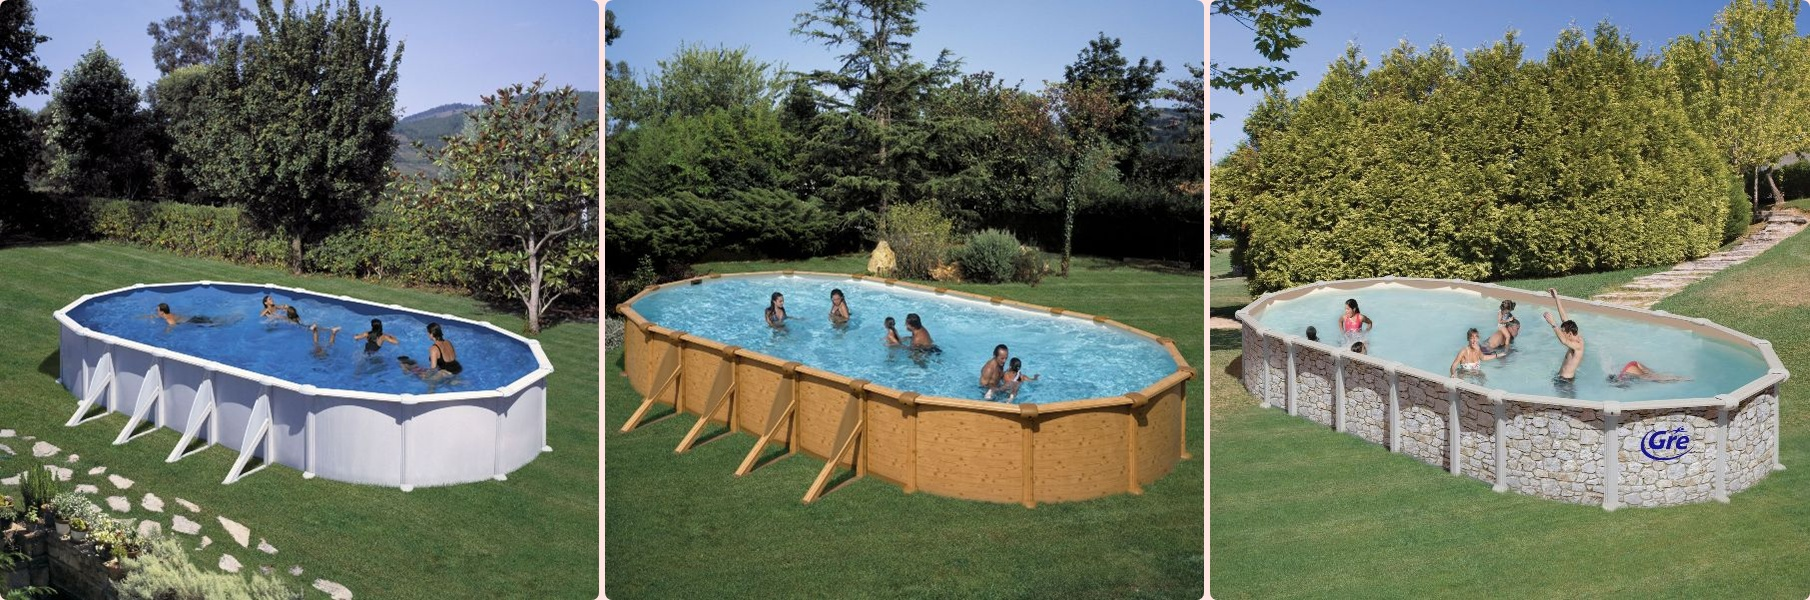 Piscine hors sol beton en kit free piscine with piscine for Piscine en kit bois hors sol